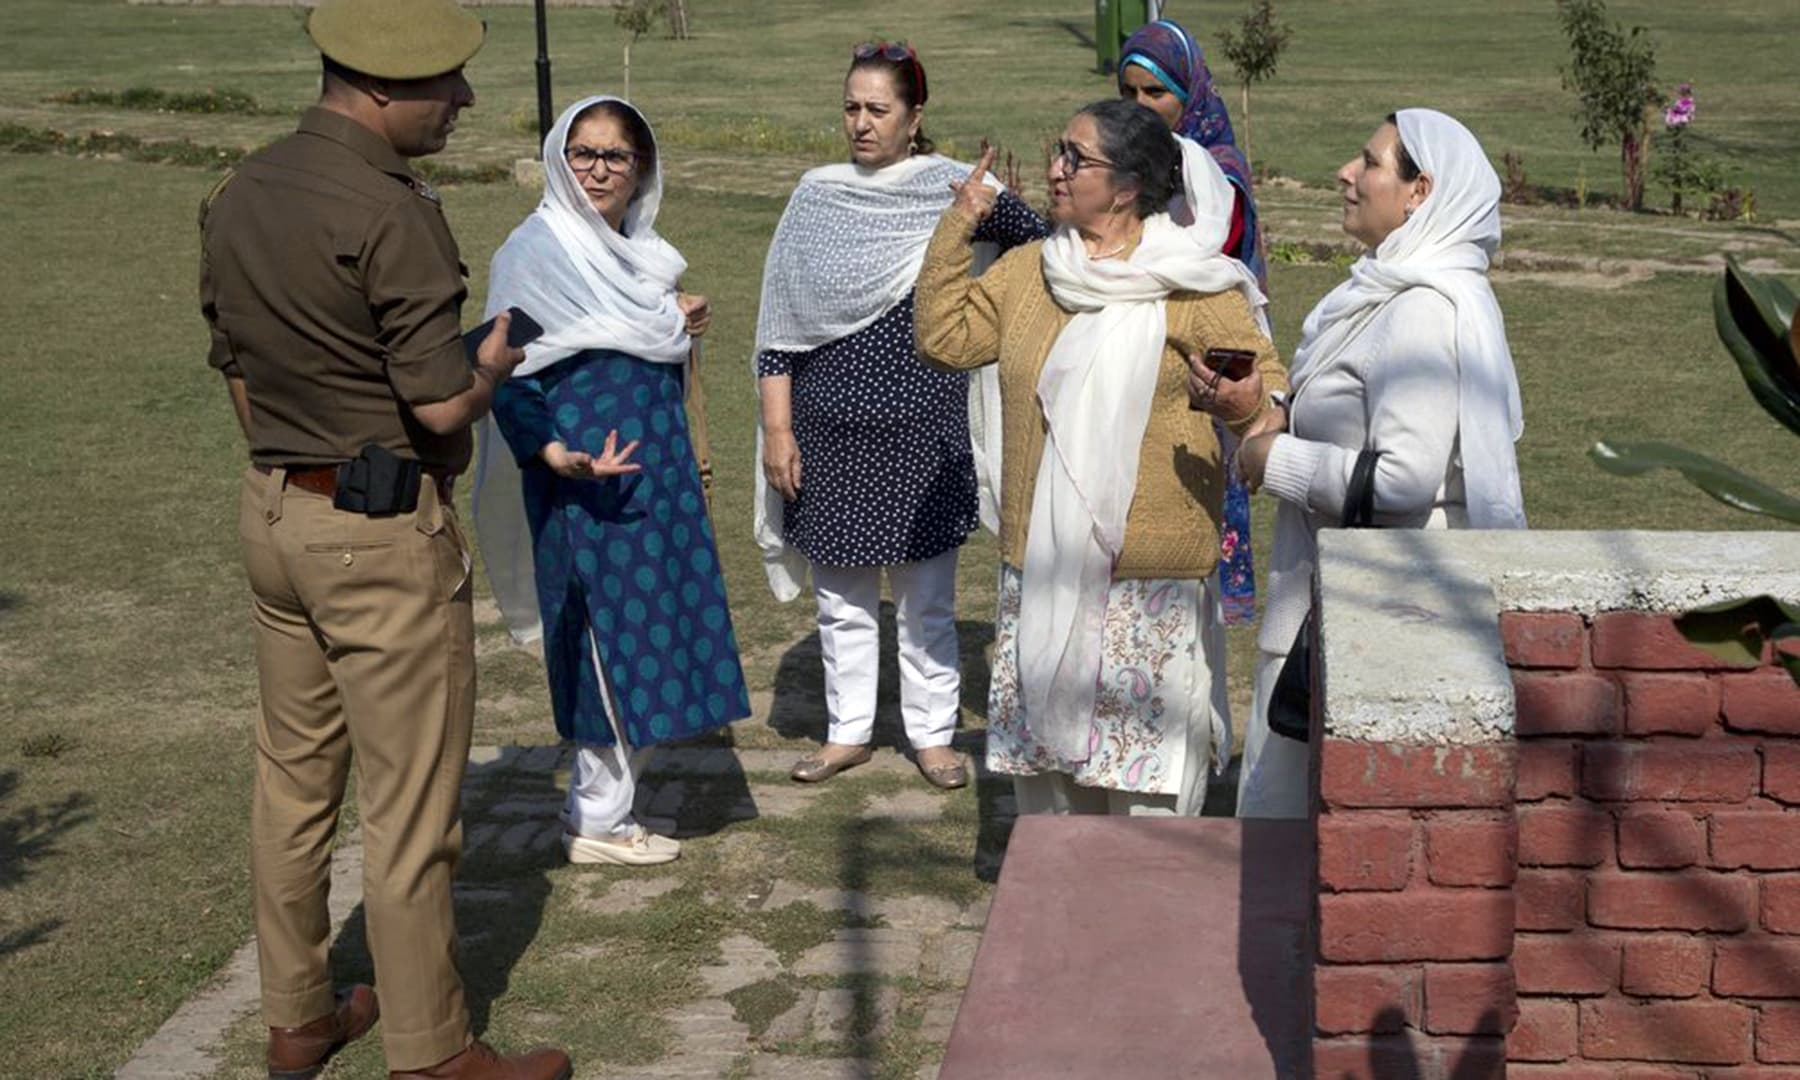 Kashmiri women argue with an Indian police officer after they were stopped from staging a protest in Srinagar, Indian-occupied Kashmir, Tuesday. — AP